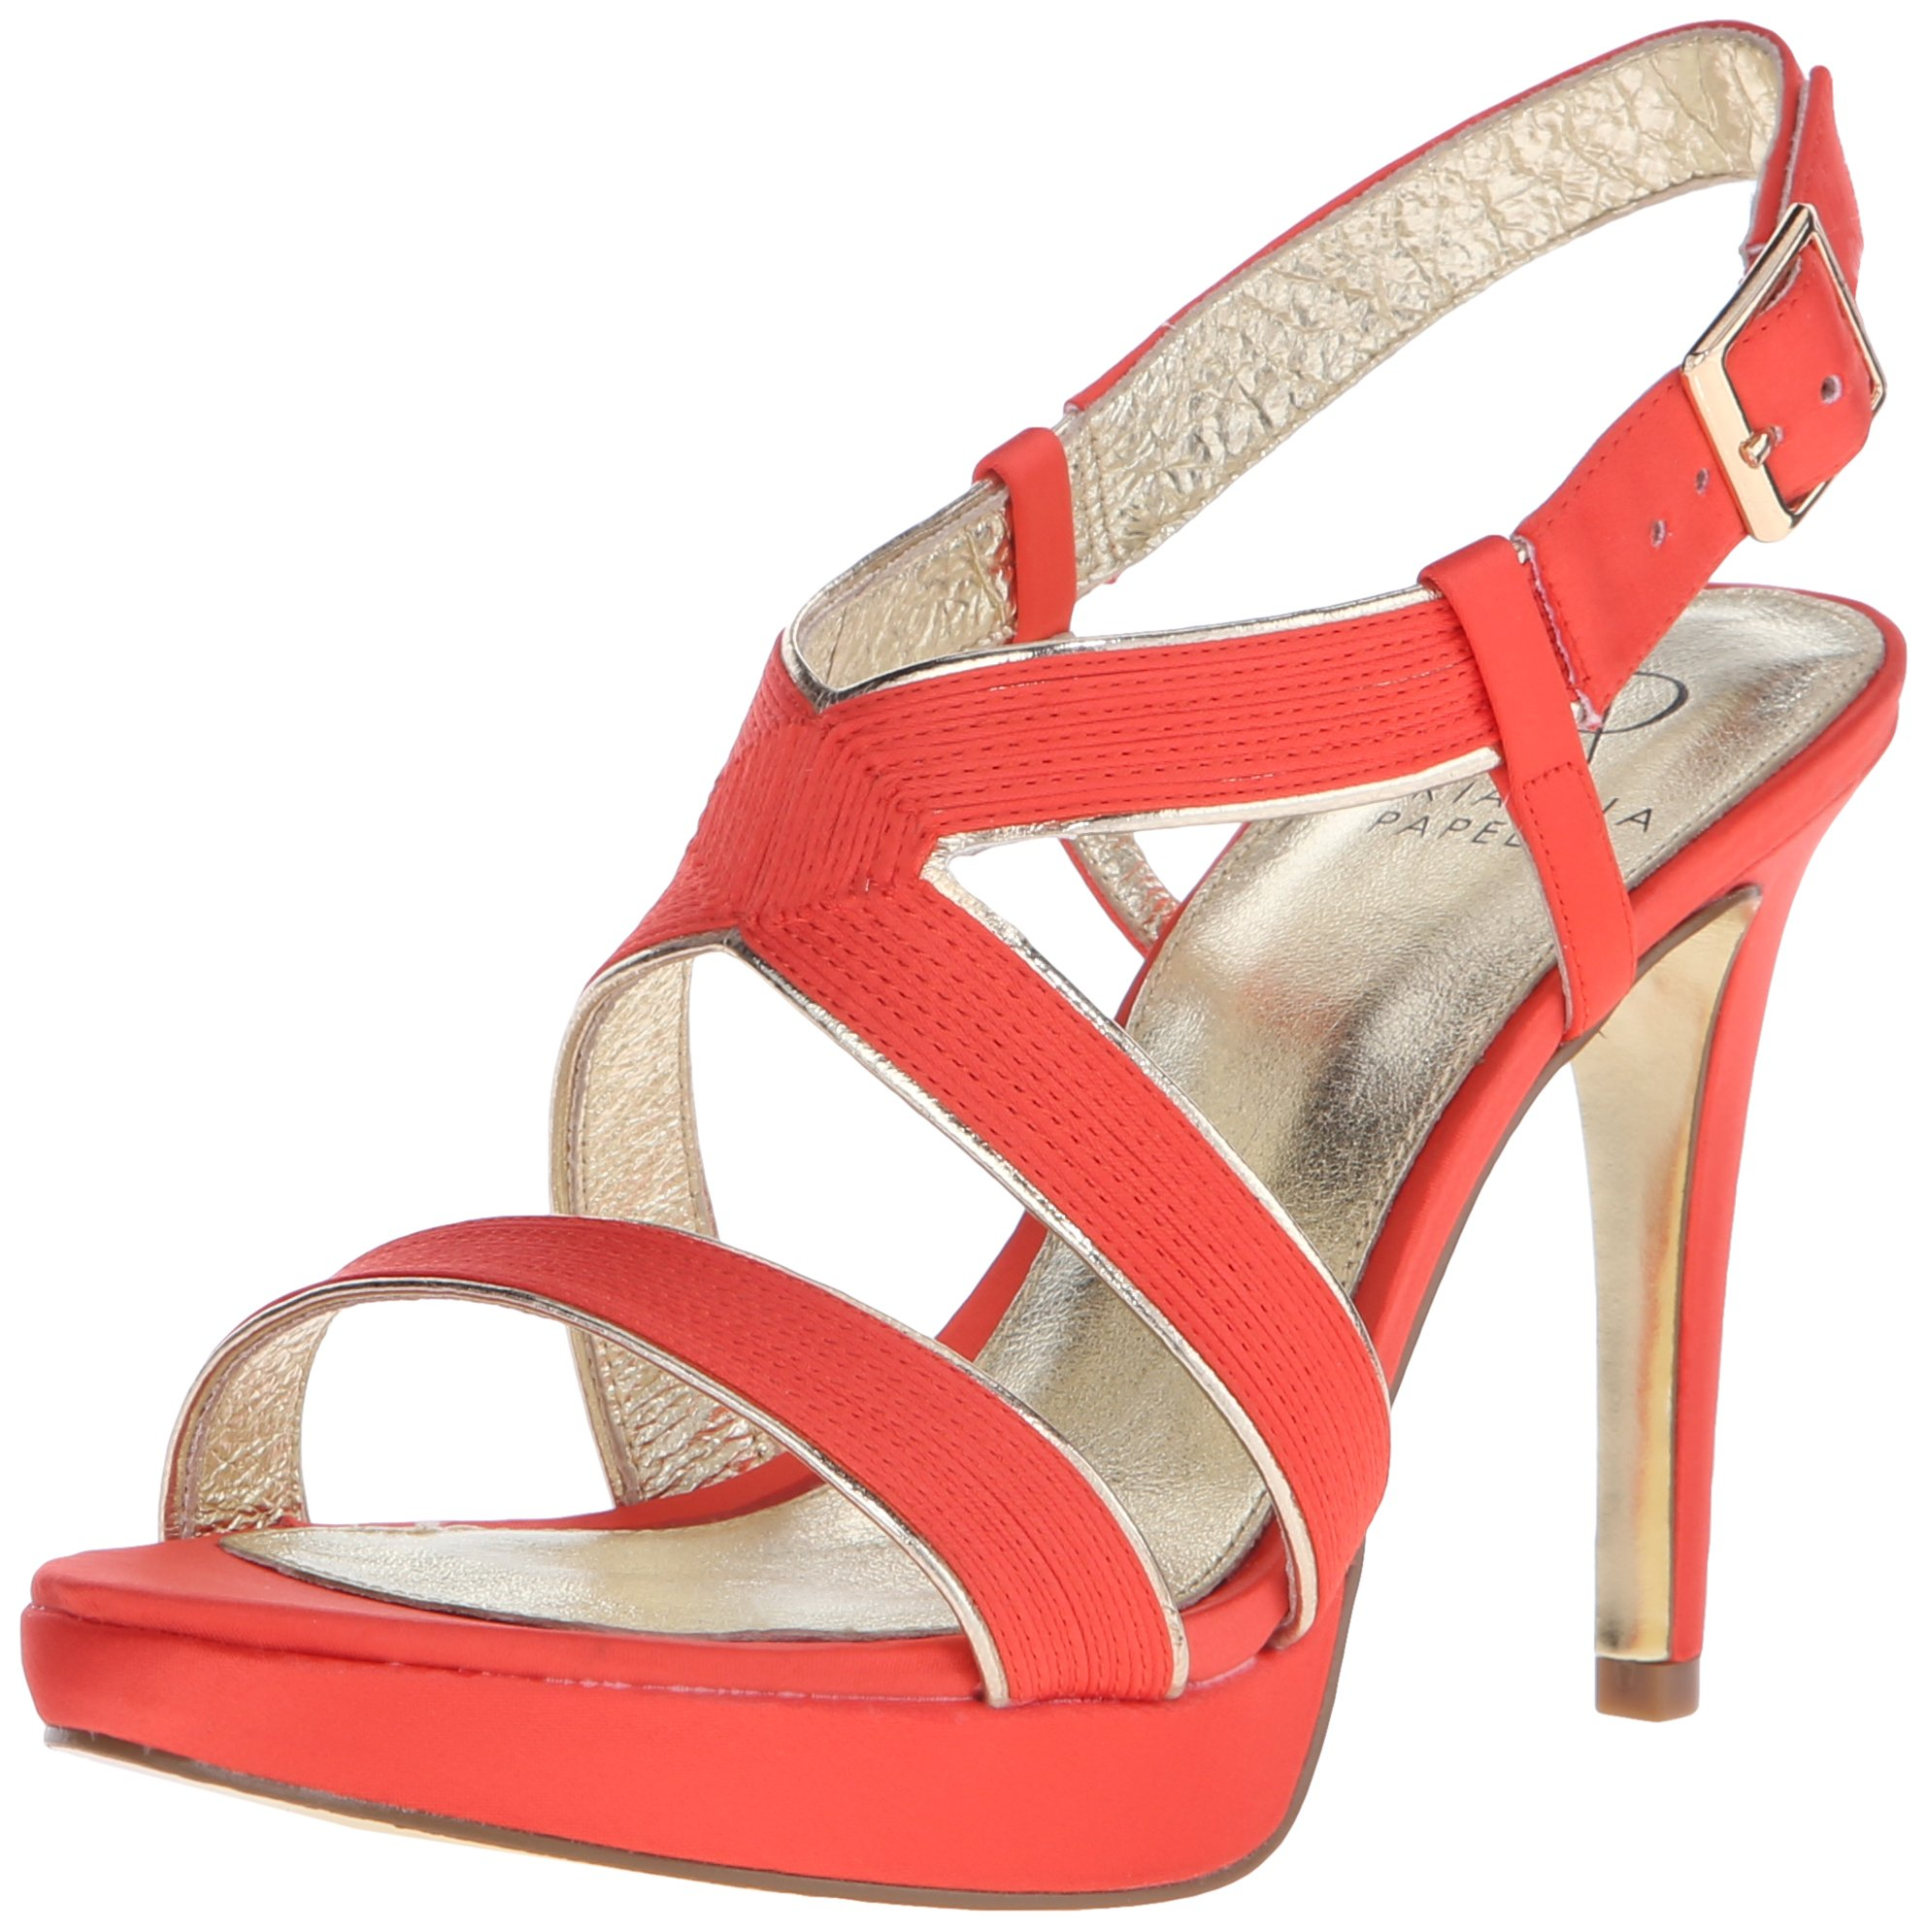 Adrianna Papell Women's Anette Platform Dress Sandal, Coral, 7 M US